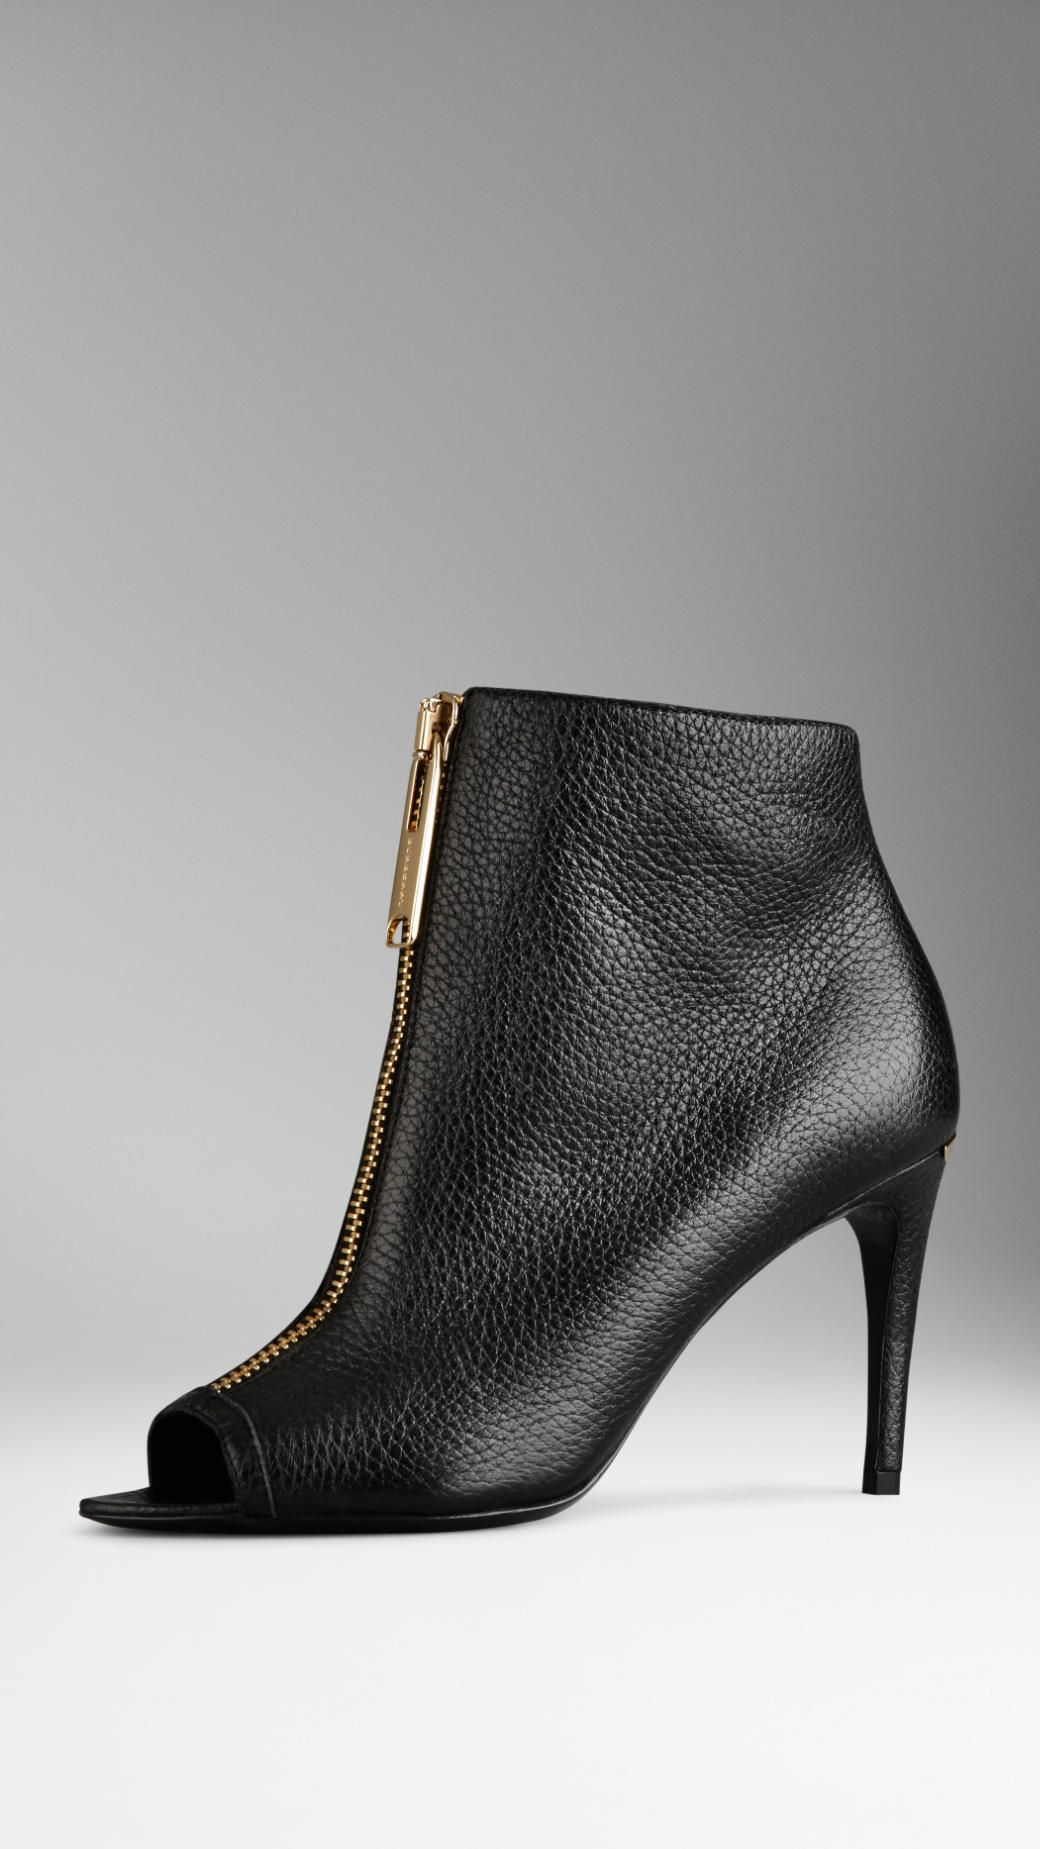 Shoes for Women | Burberry United States. Peep Toe ...